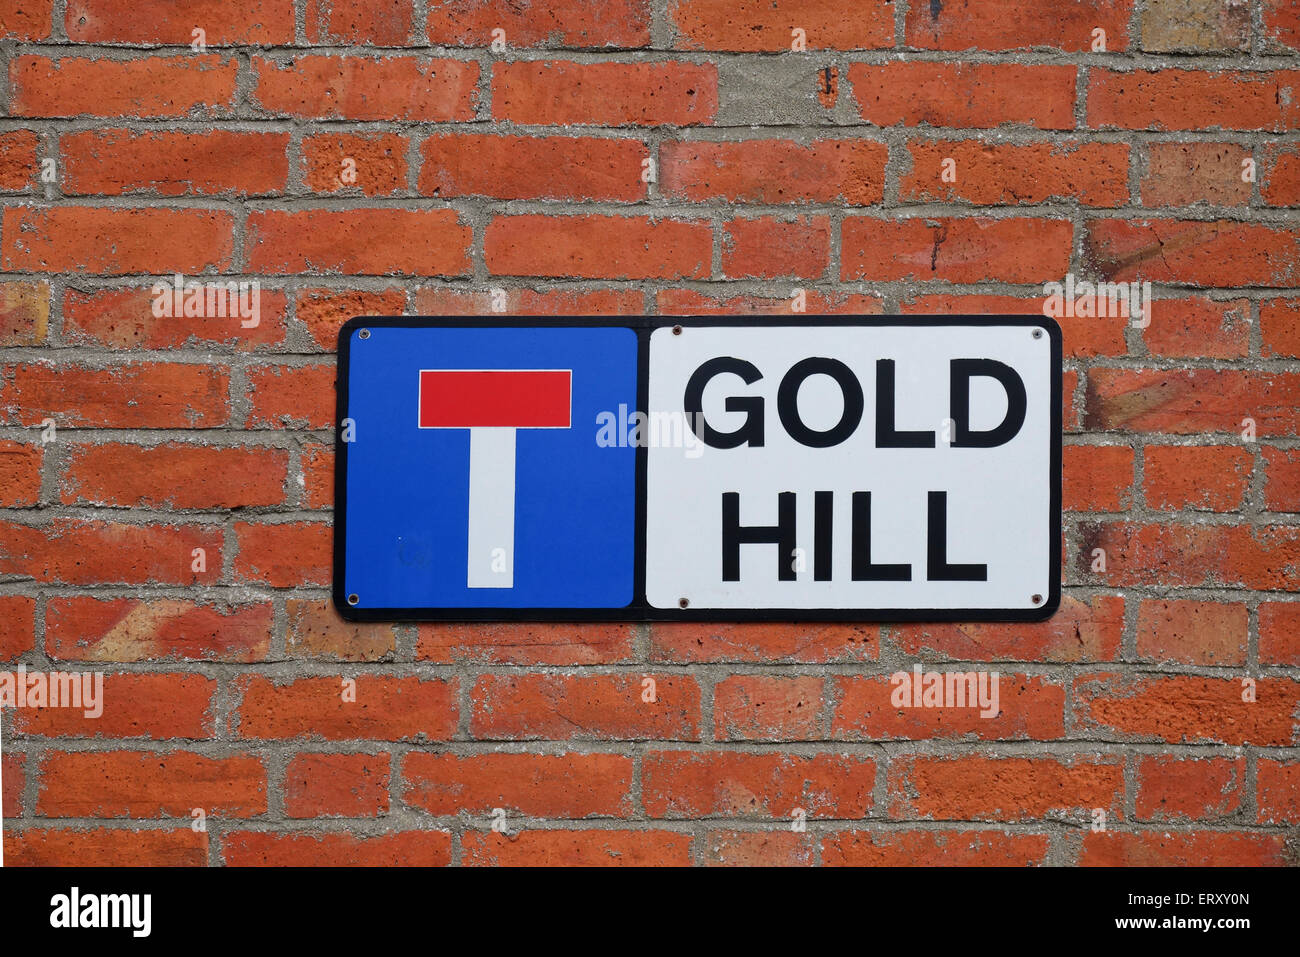 Gold Hill, Shaftesbury  - Famous for the Hovis advert, - Stock Image